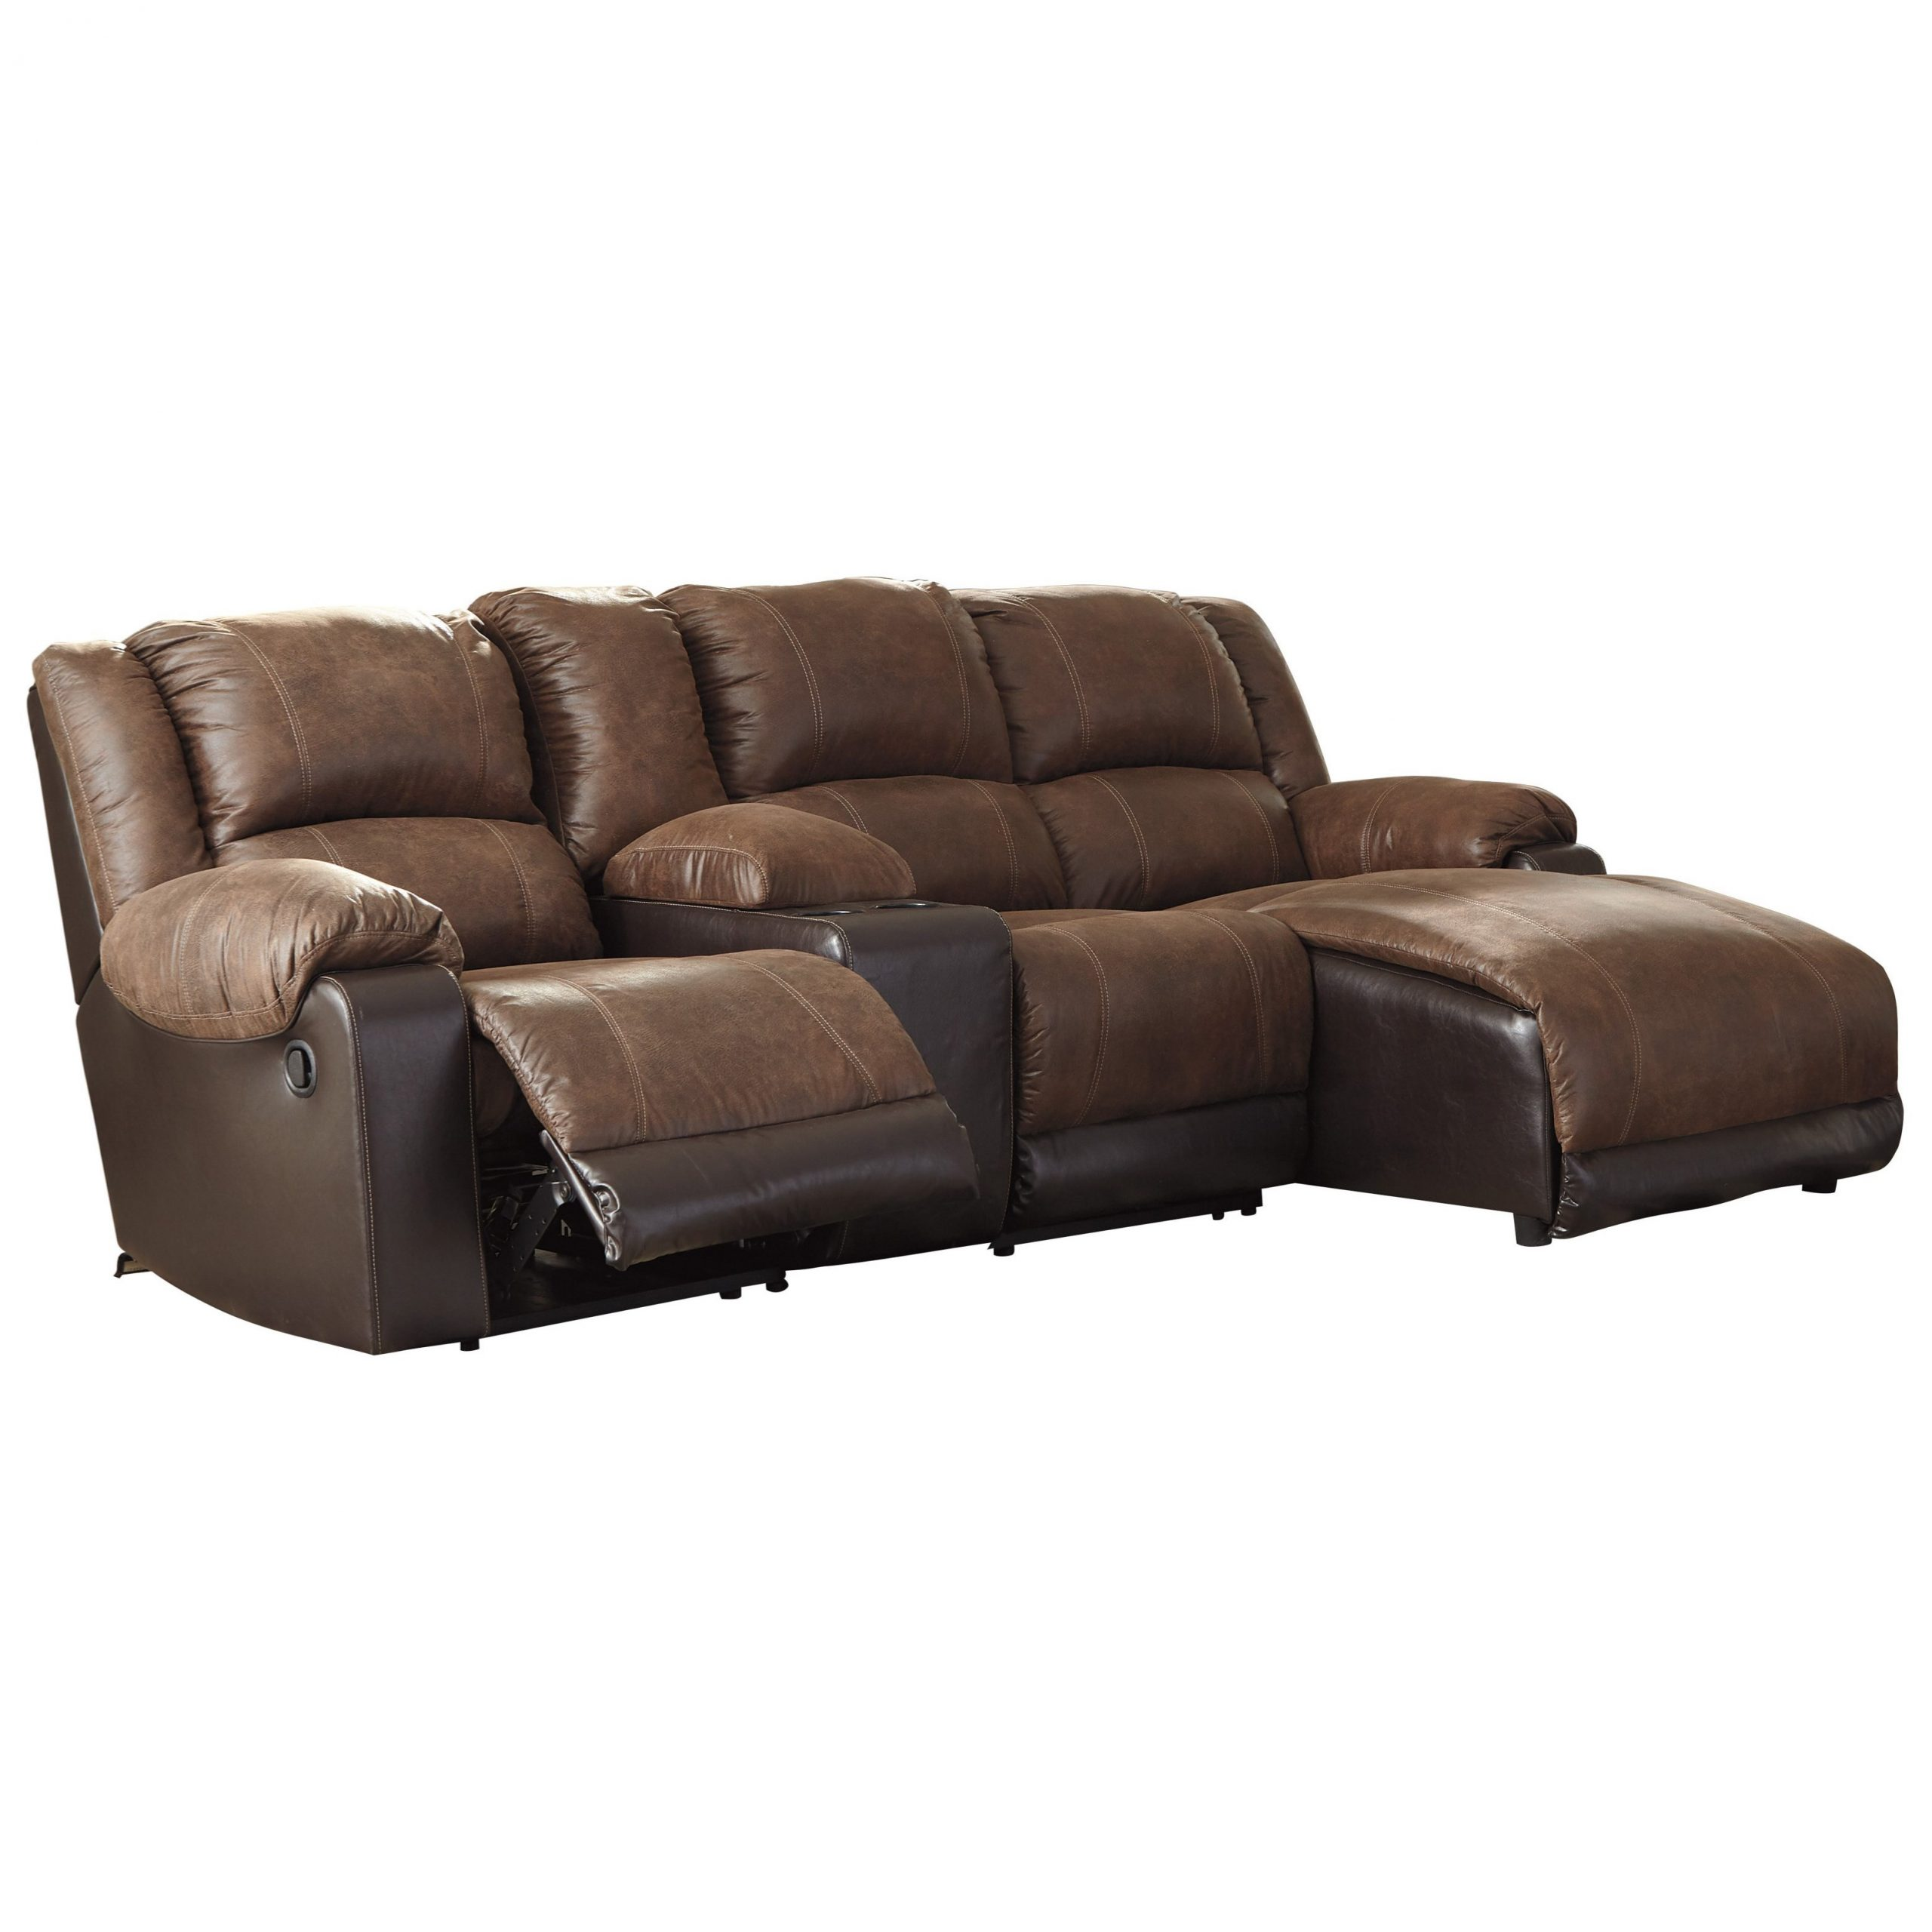 Most Recently Released Celine Sectional Futon Sofas With Storage Reclining Couch Pertaining To Signature Designashley Nantahala Reclining Chaise Sofa (View 4 of 20)